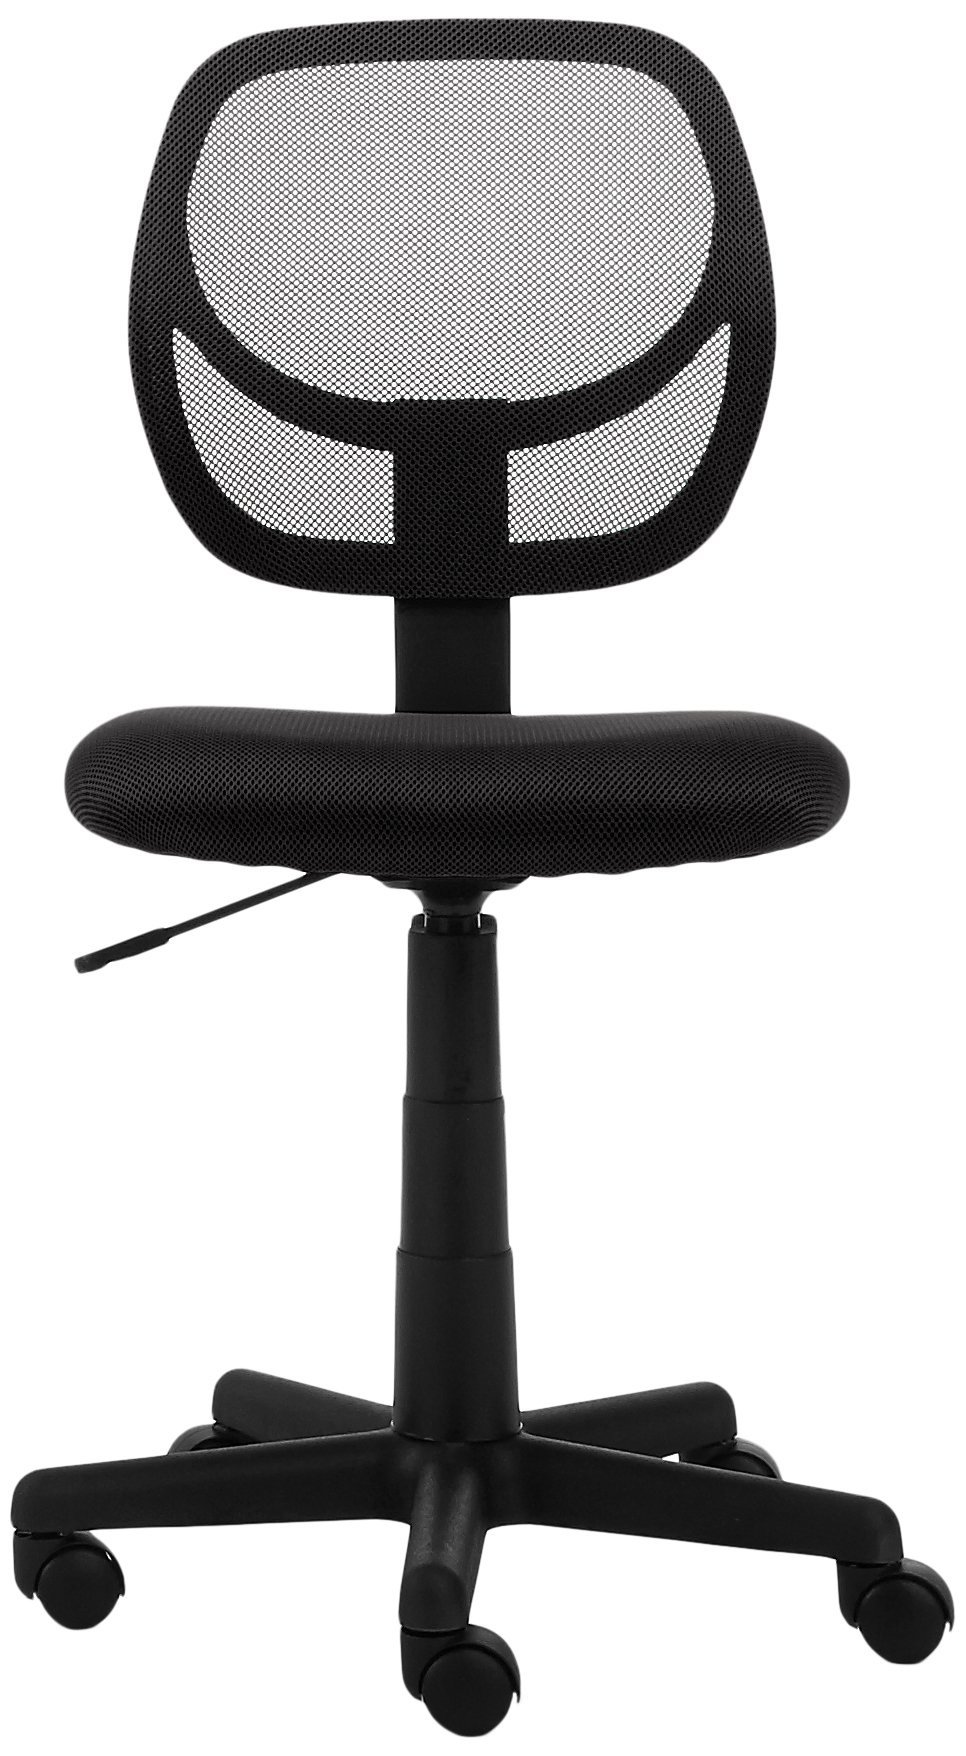 AmazonBasics Low-Back Computer Task/Desk Chair with Swivel Casters - Black by AmazonBasics (Image #3)